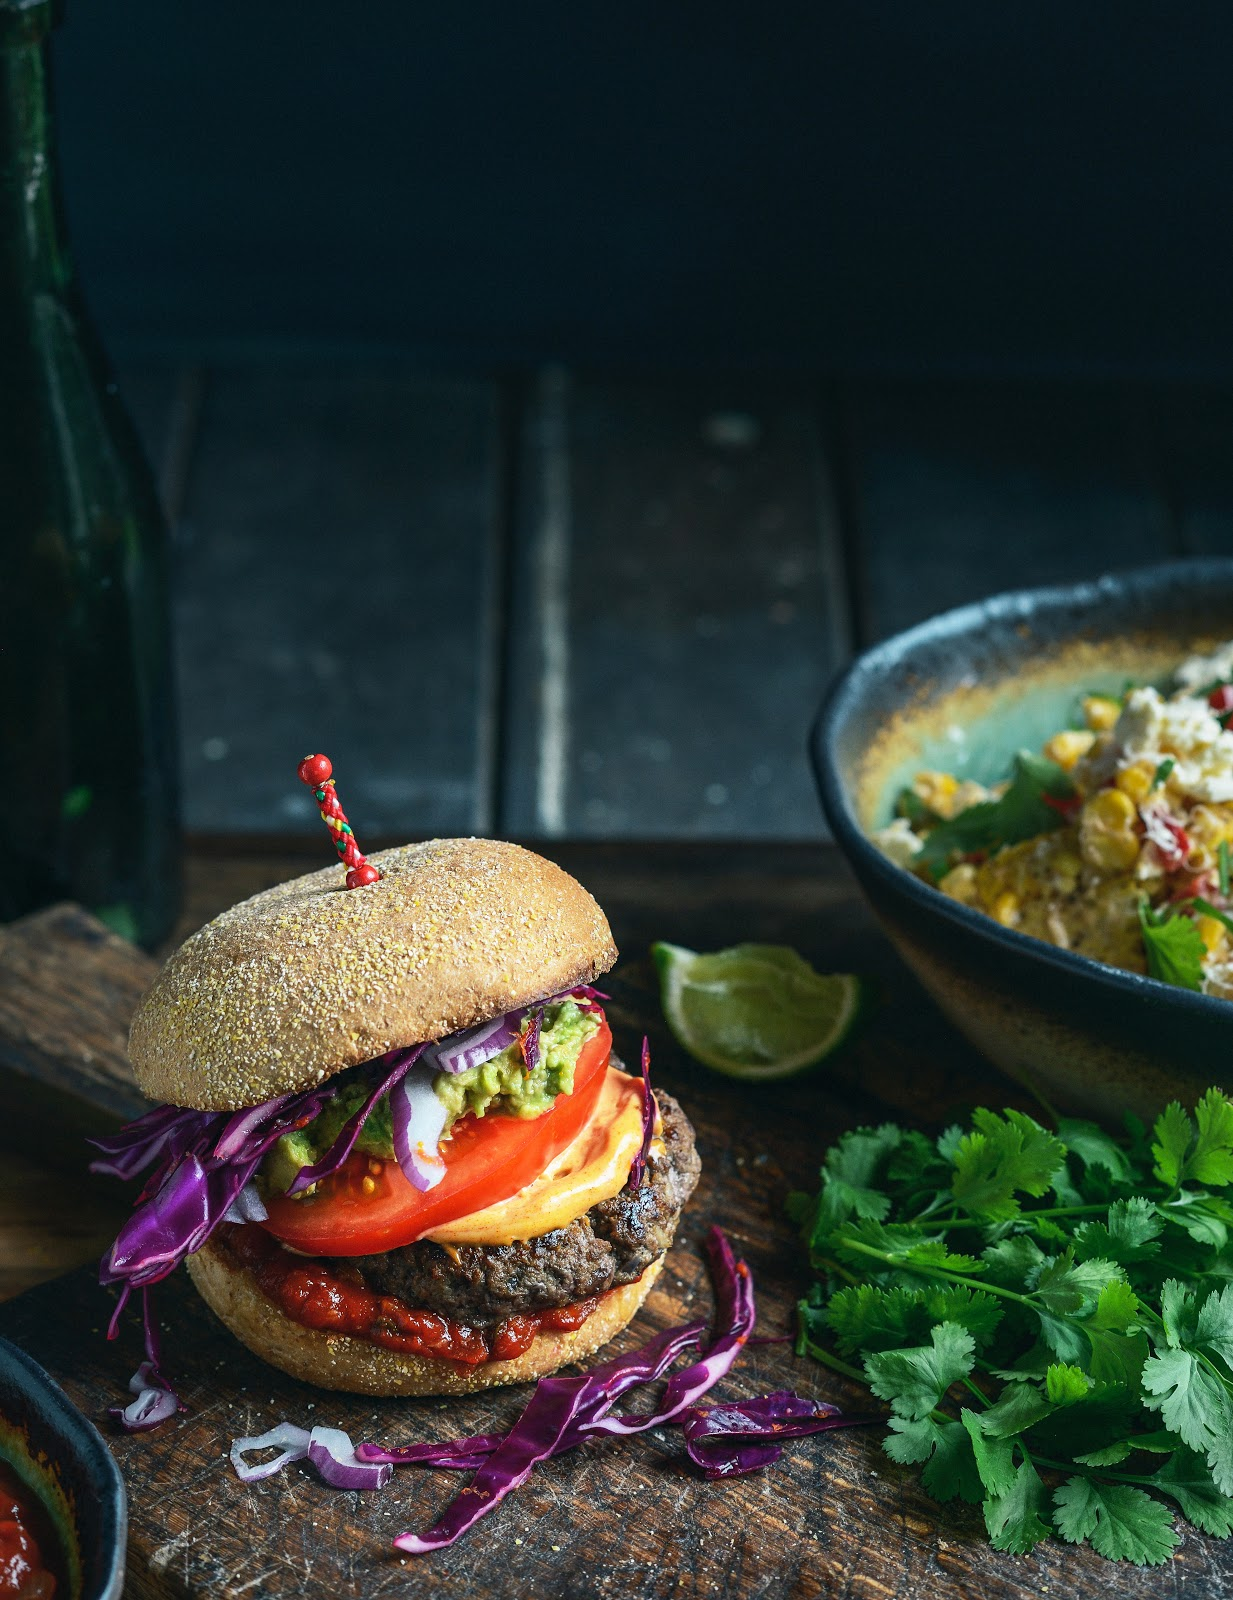 Mexican Beef Burger